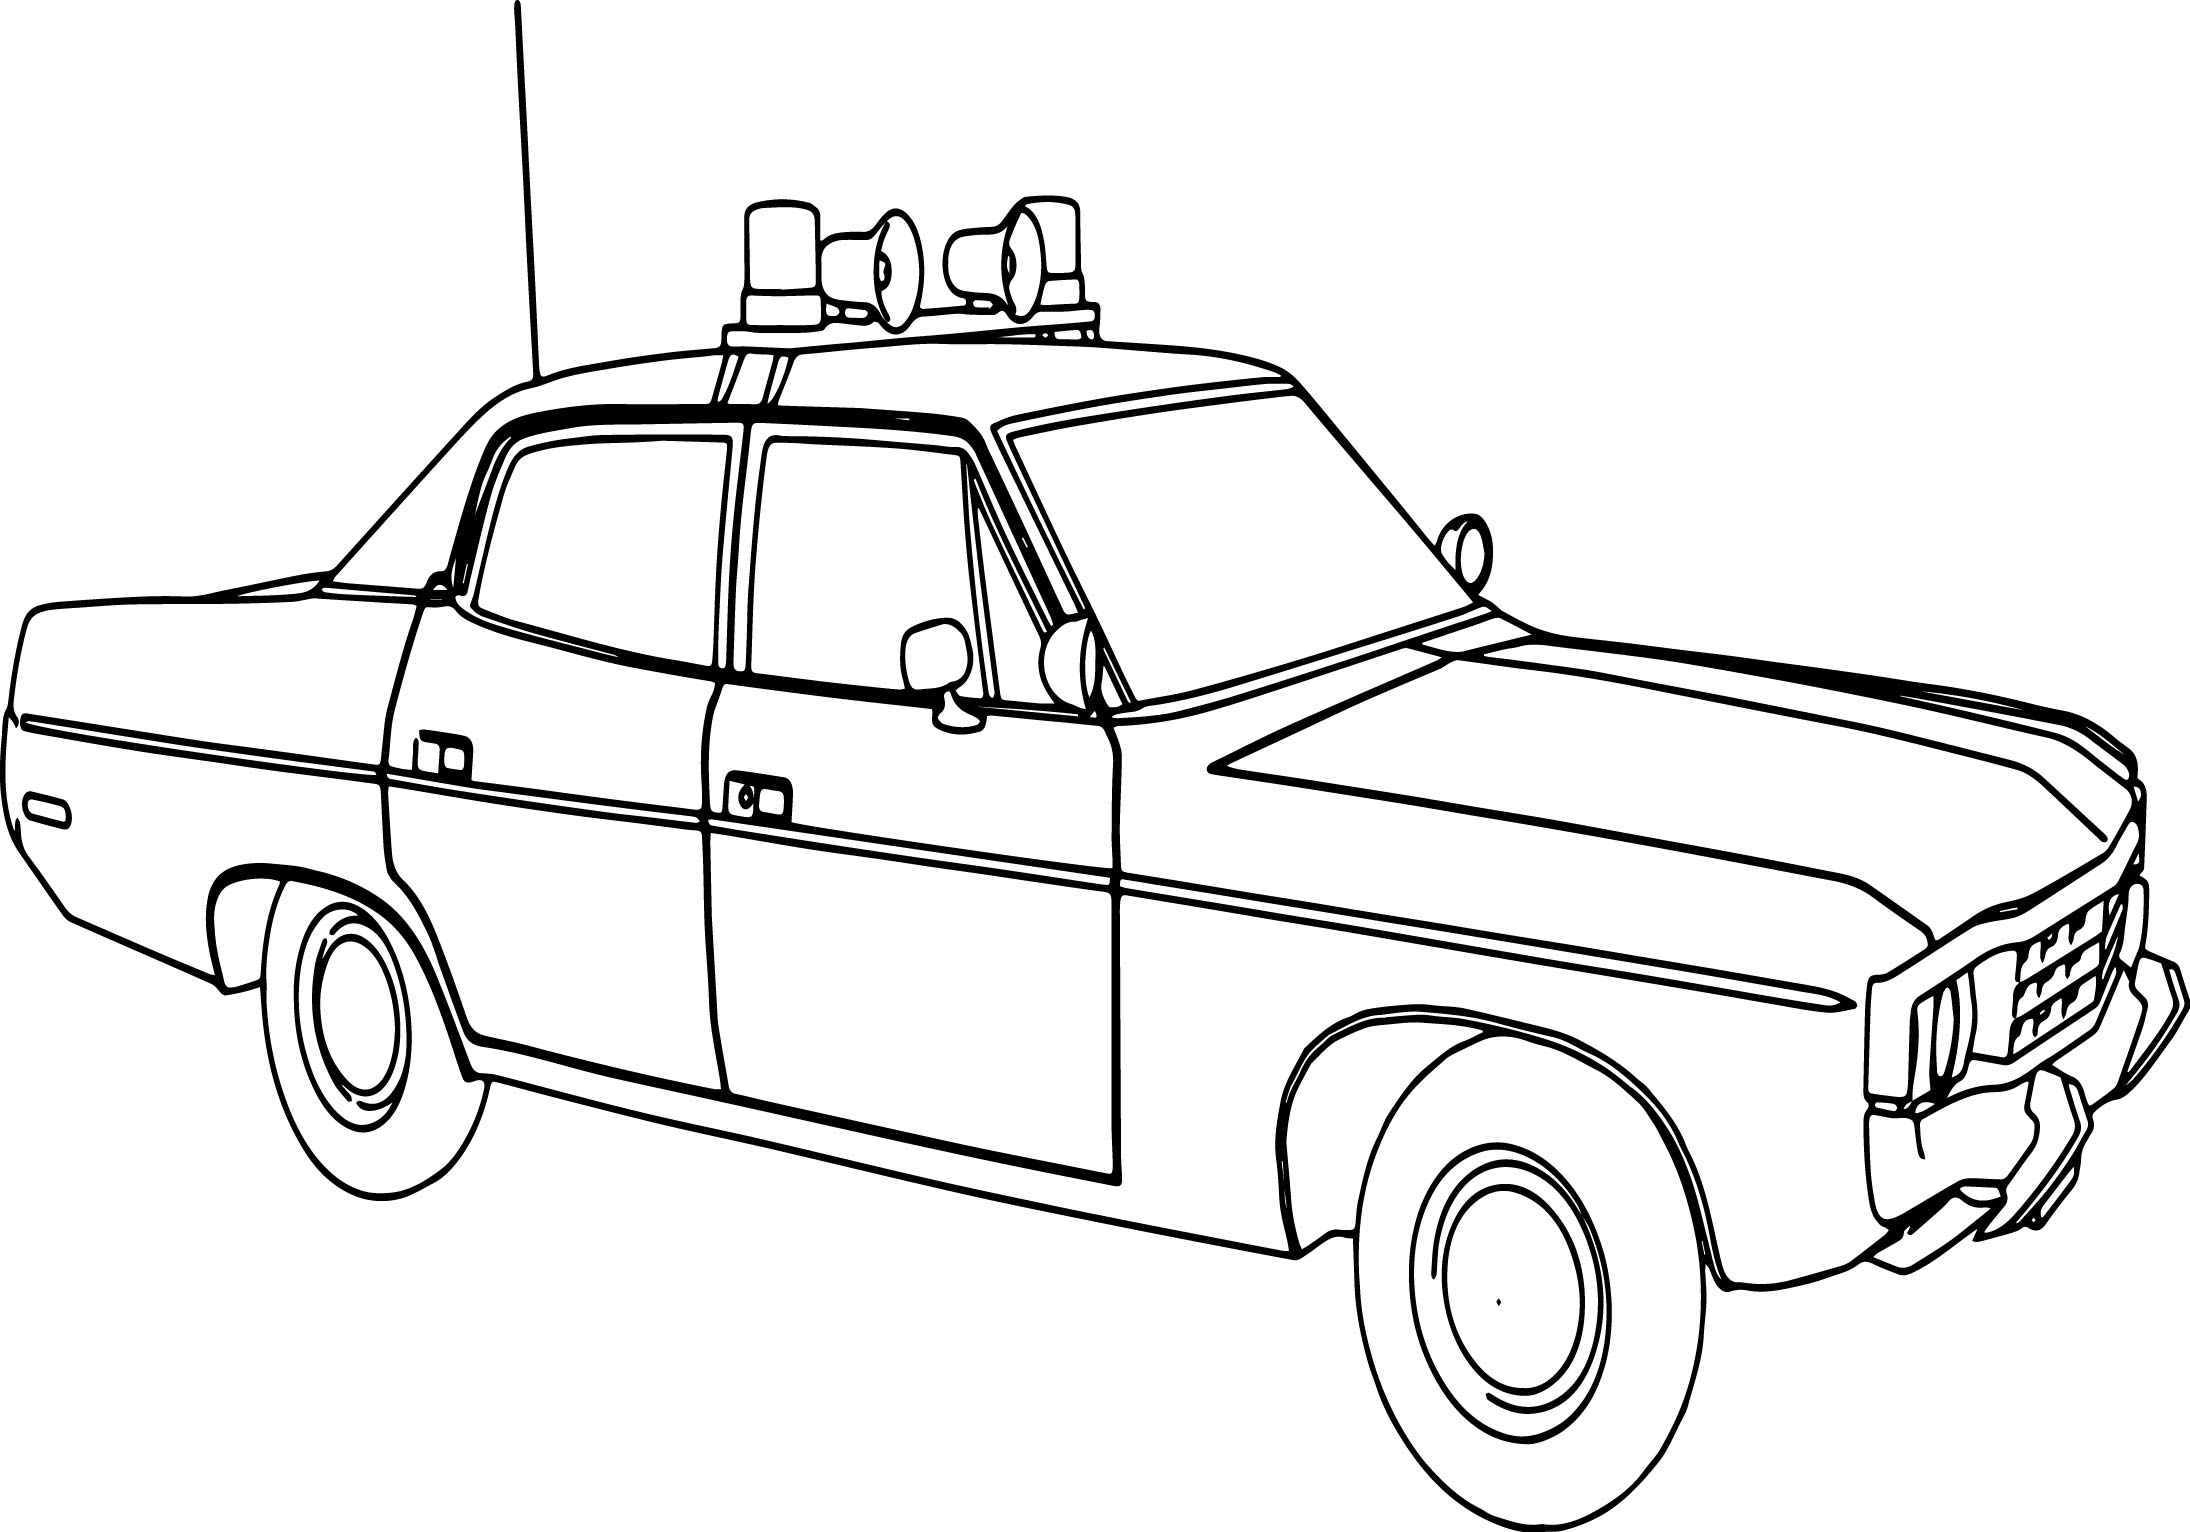 2190x1532 Police Car Coloring Pages To Print Many Interesting General Free